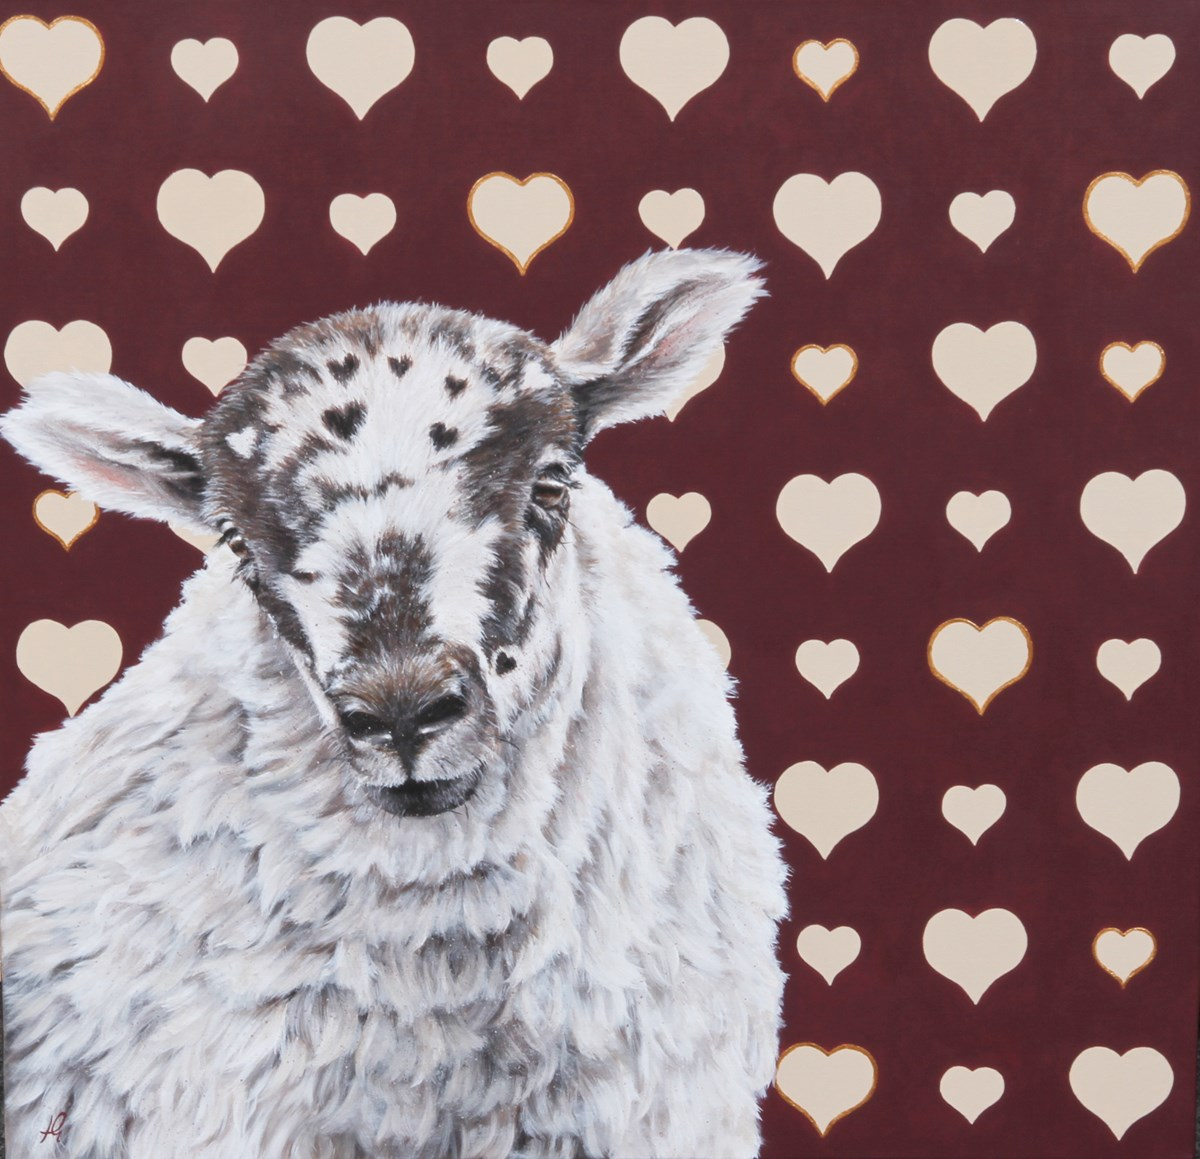 Love Ewe by hayley goodhead - Original on Box Canvas sized 30x30 inches. Available from Whitewall Galleries